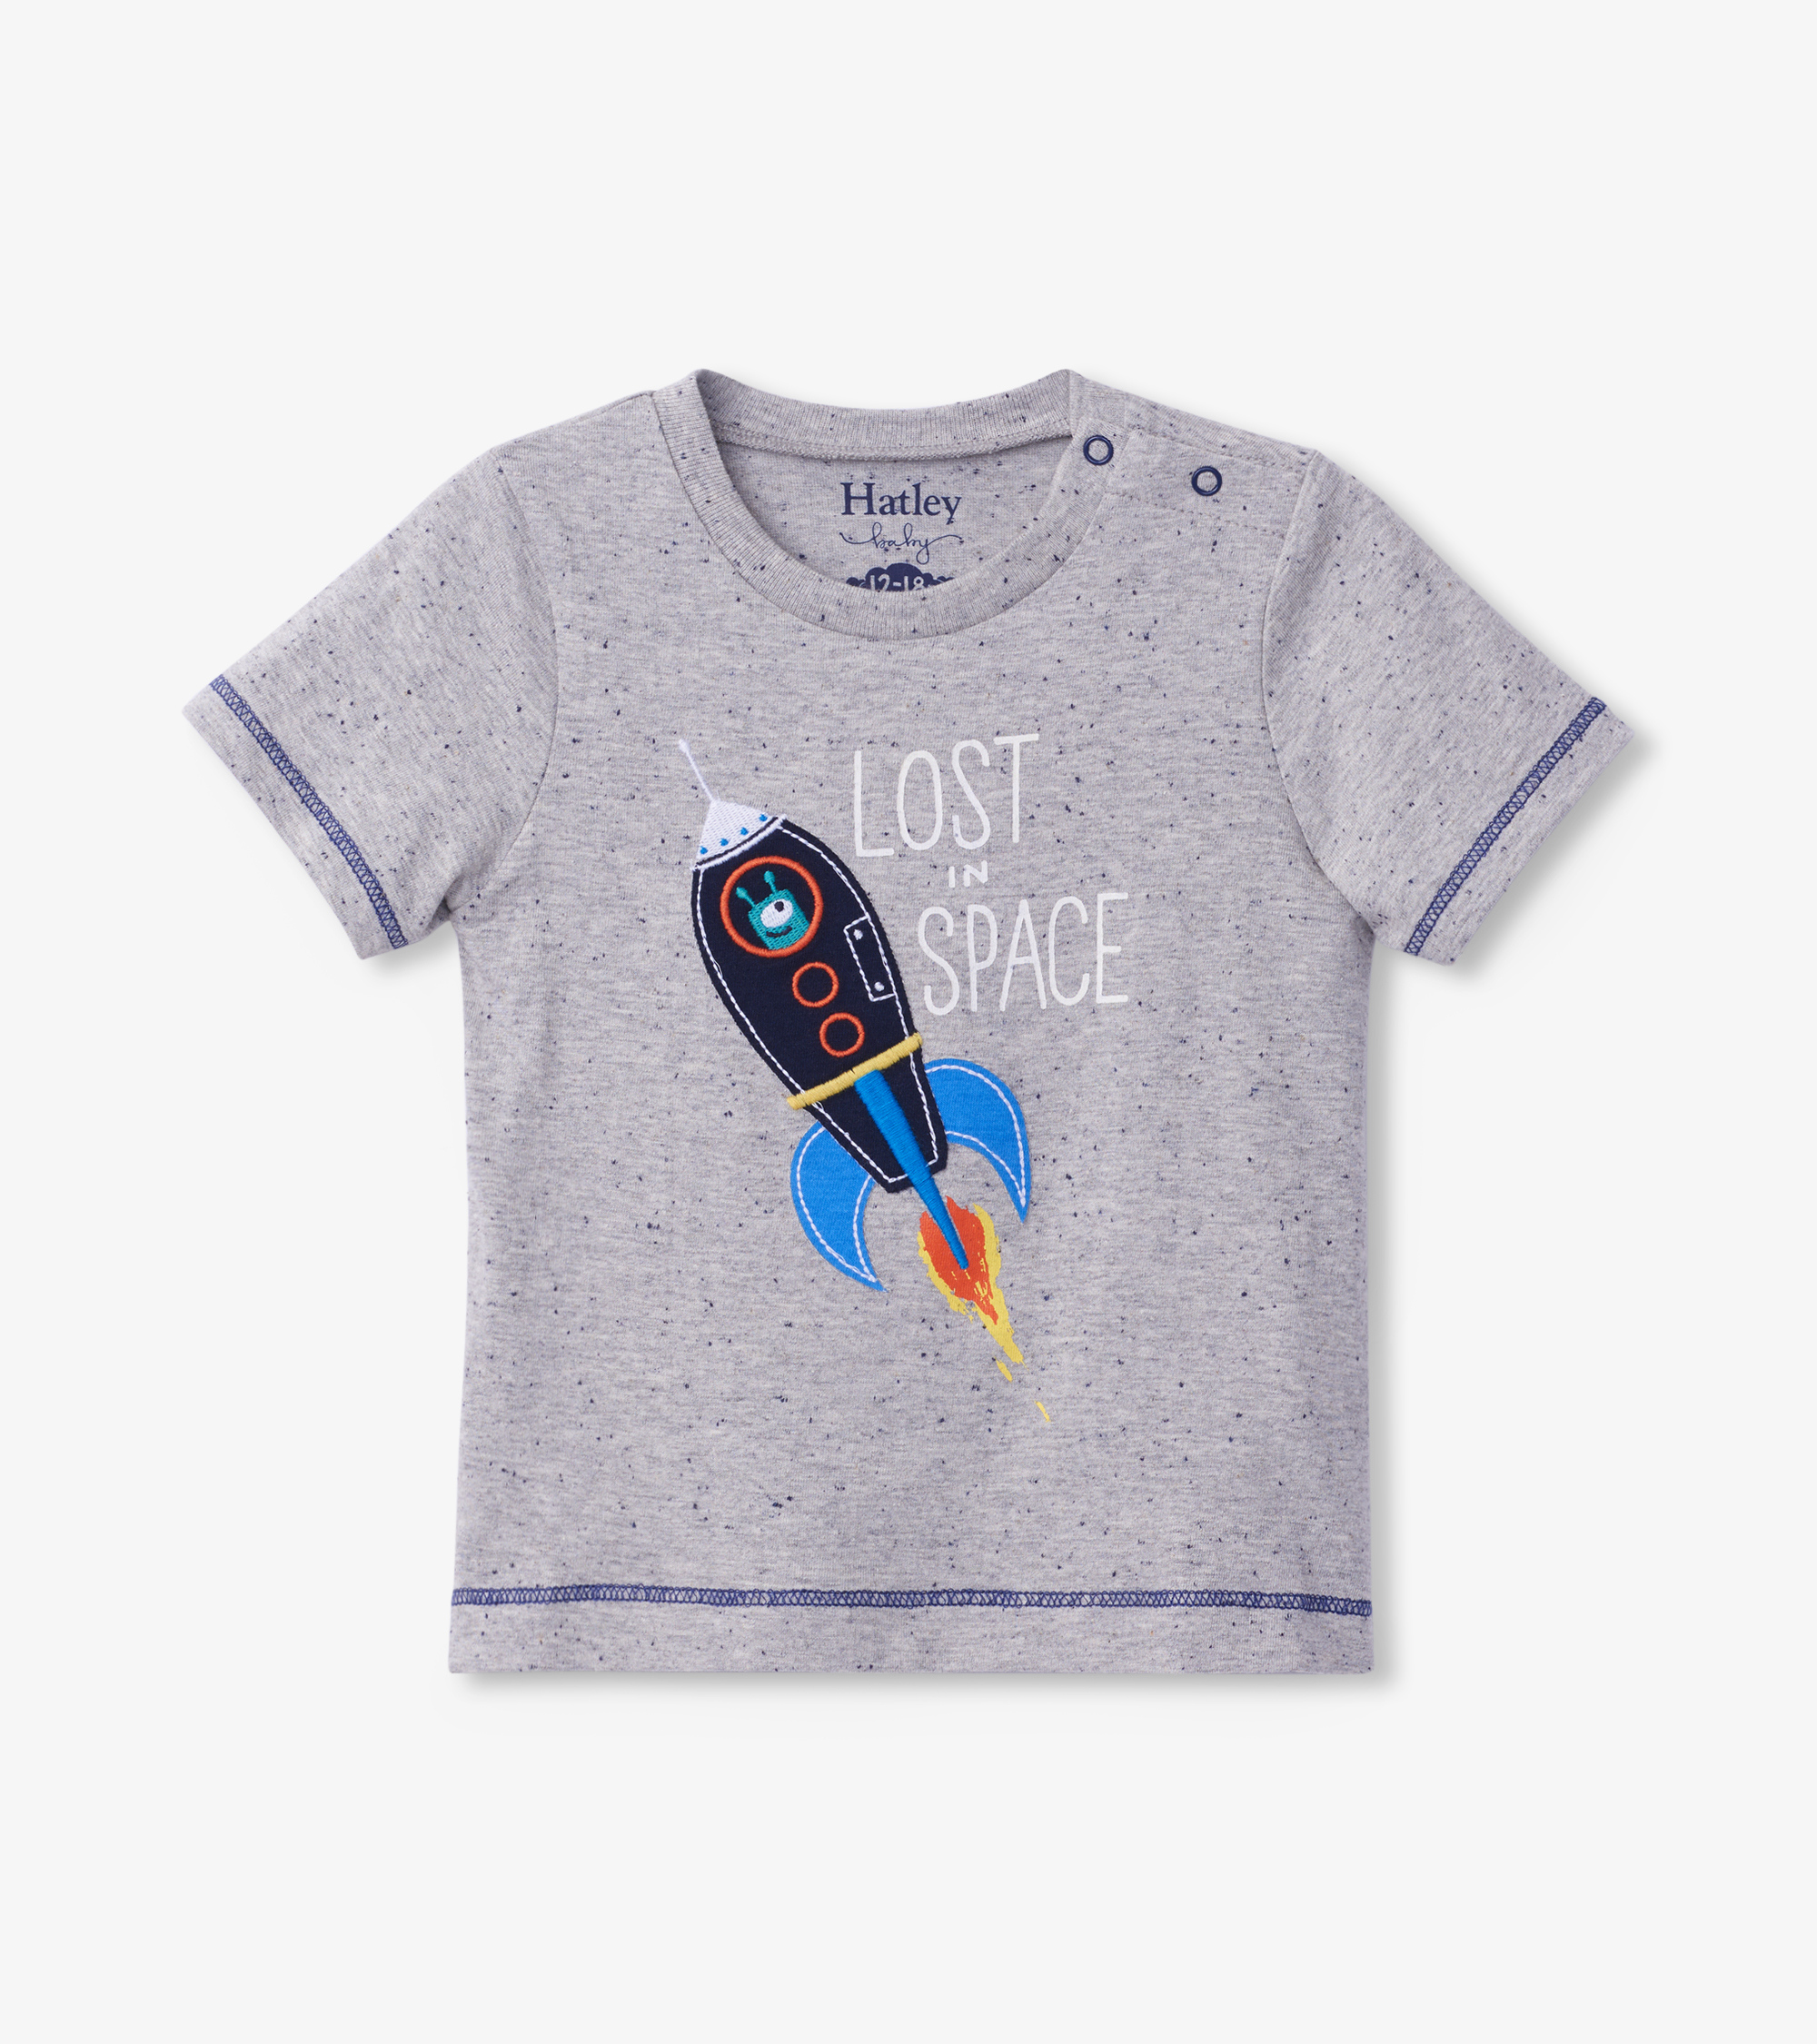 Hatley Space Rocket Glow In The Dark Baby Graphic Tee